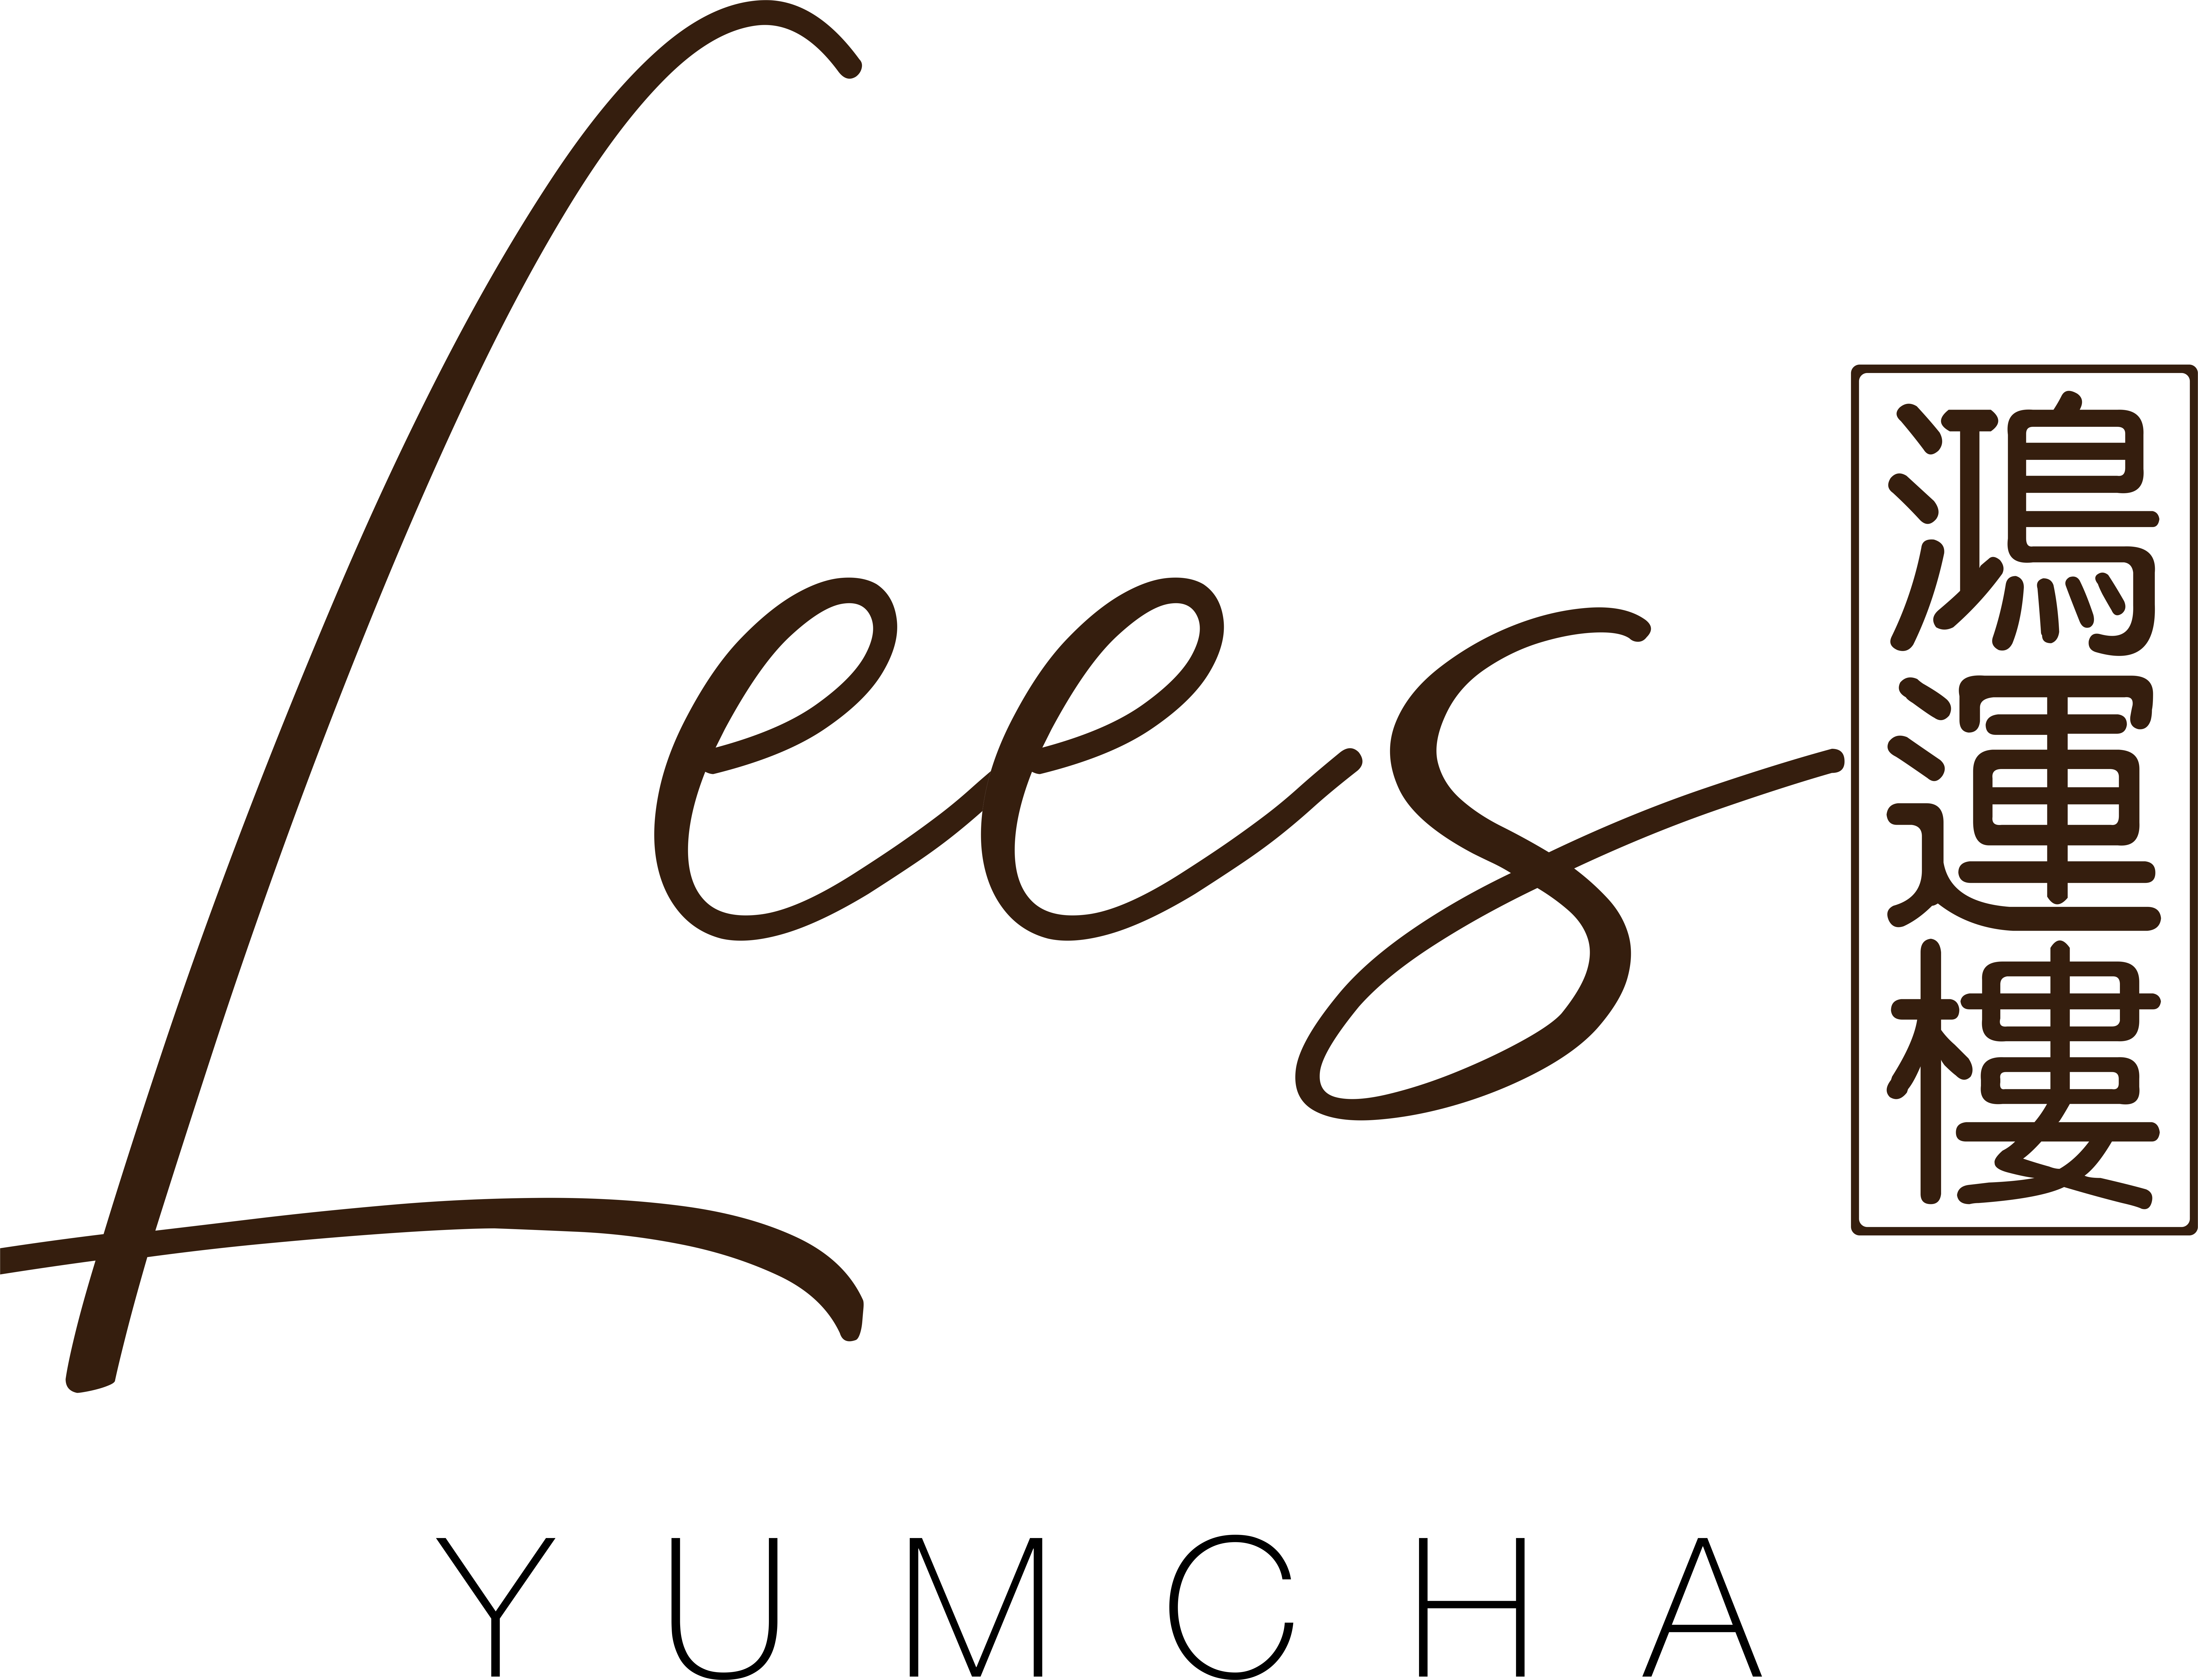 """{""""Text"""":"""""""",""""URL"""":""""https://www.charlestownsquare.com.au/stores-services/lee-s-yum-cha"""",""""OpenNewWindow"""":false}"""